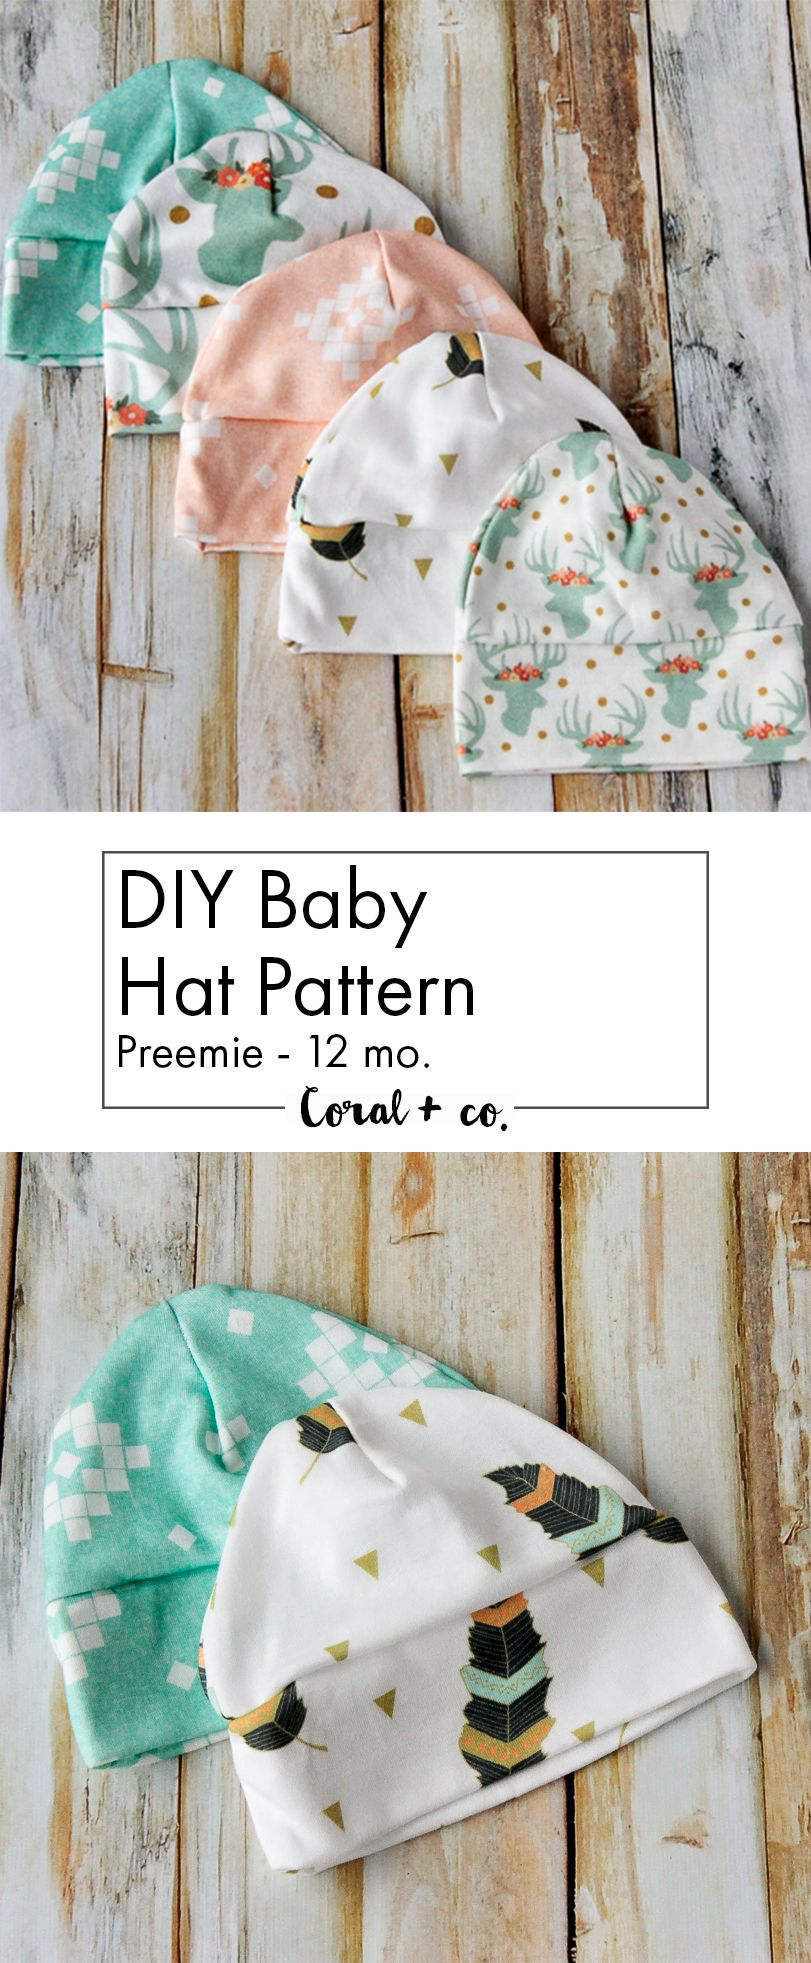 Easiest Baby Hat Sewing Pattern EVER! | Sewing Projects (Sewing is ...